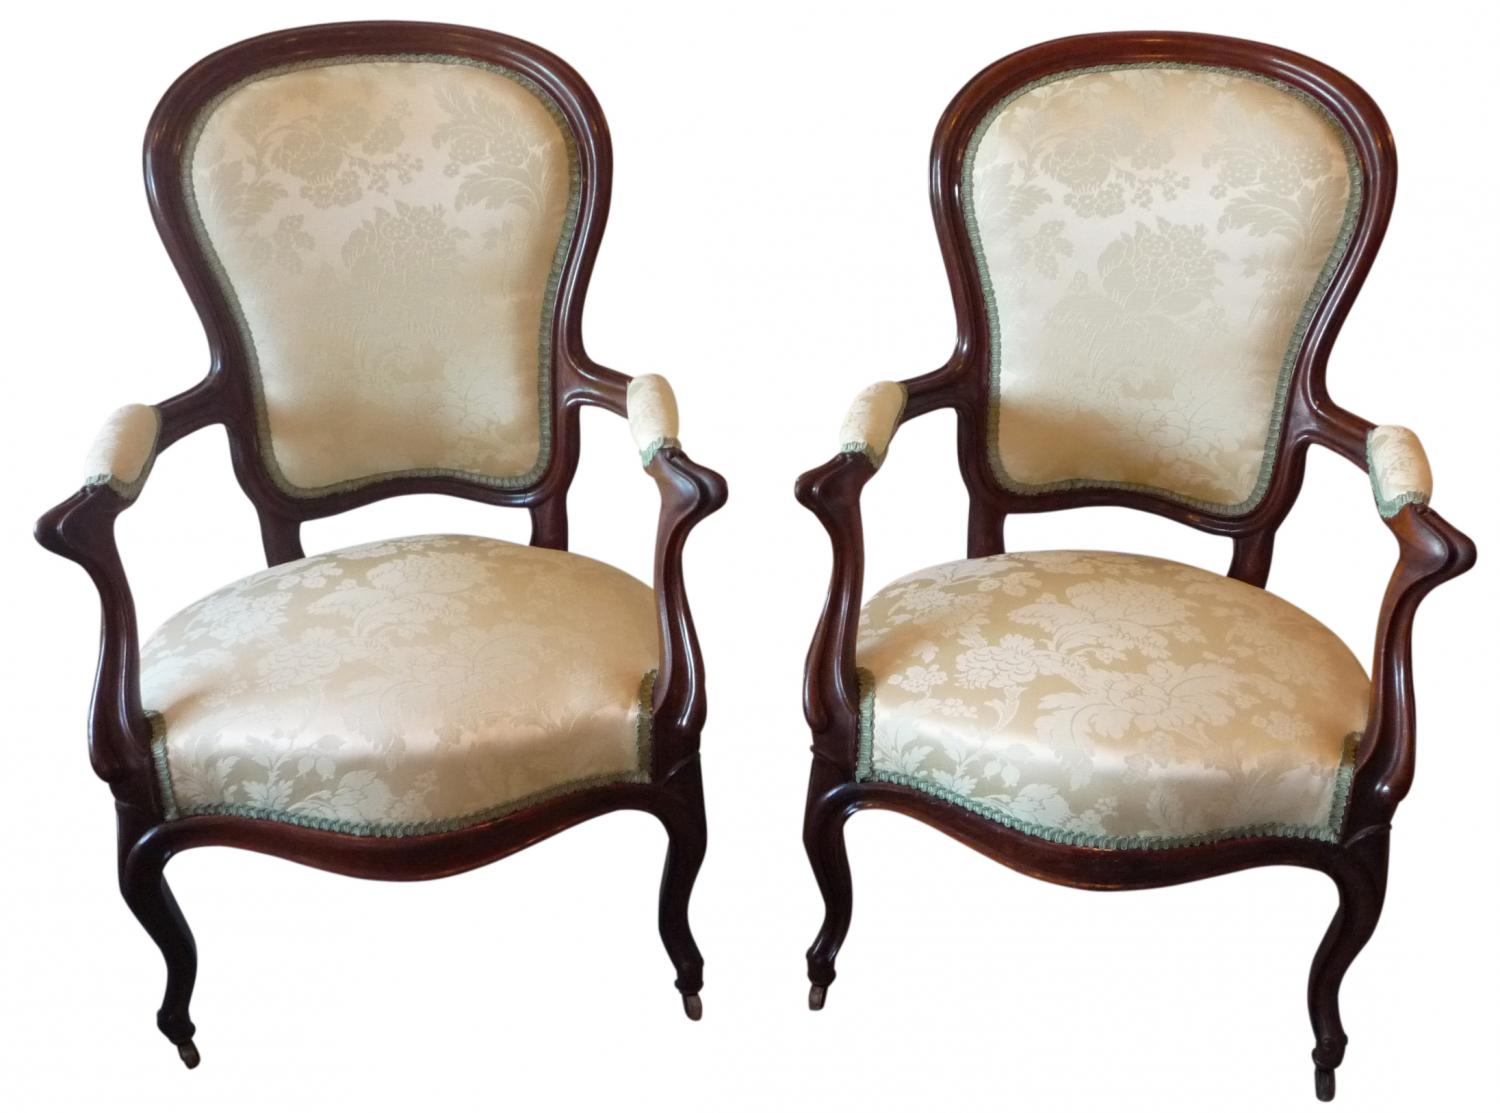 A pair of French rosewood arm chairs c 1865